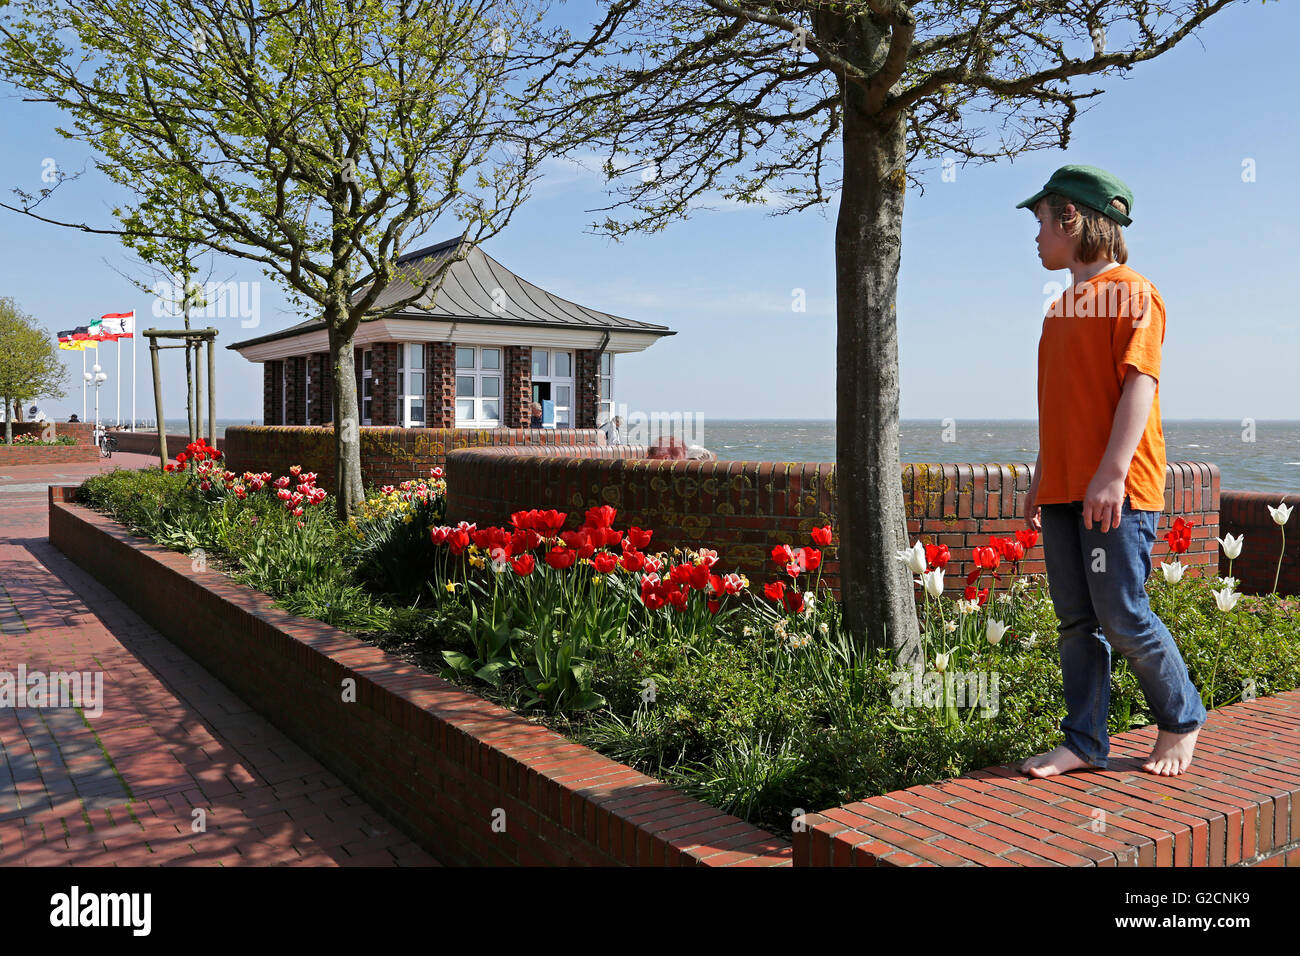 seafront, South Beach, Wilhelmshaven, Lower Saxony, Germany - Stock Image